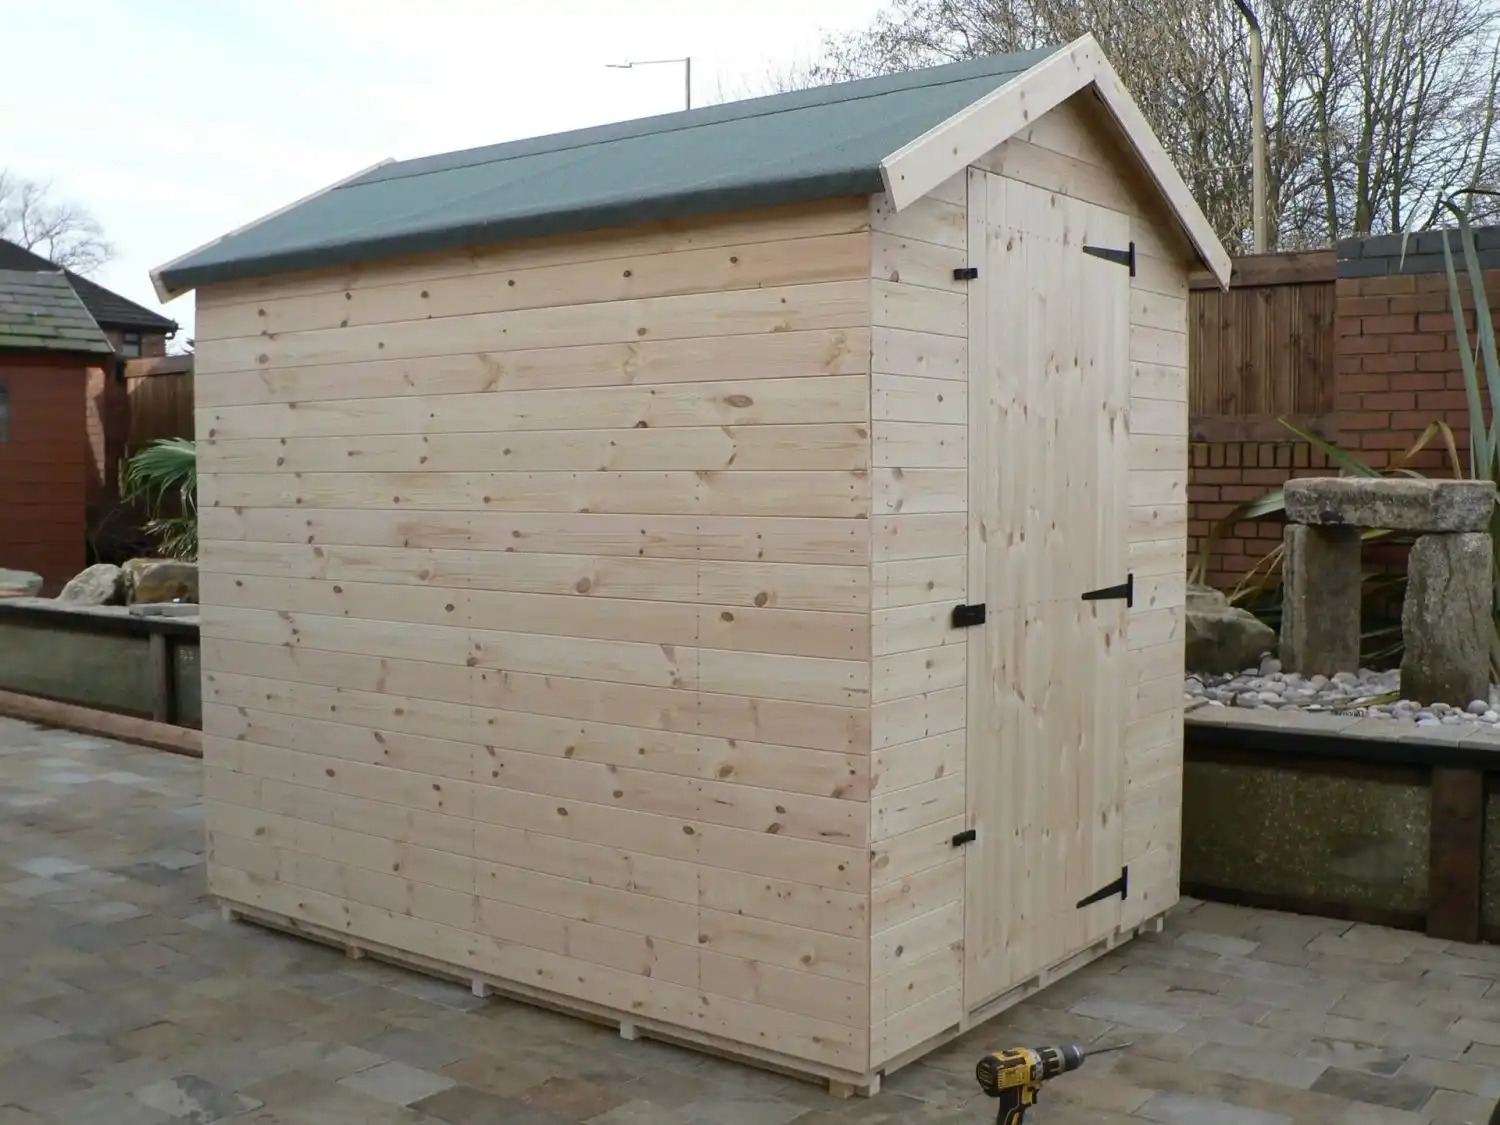 7' X 5' Apex Shed No Windows